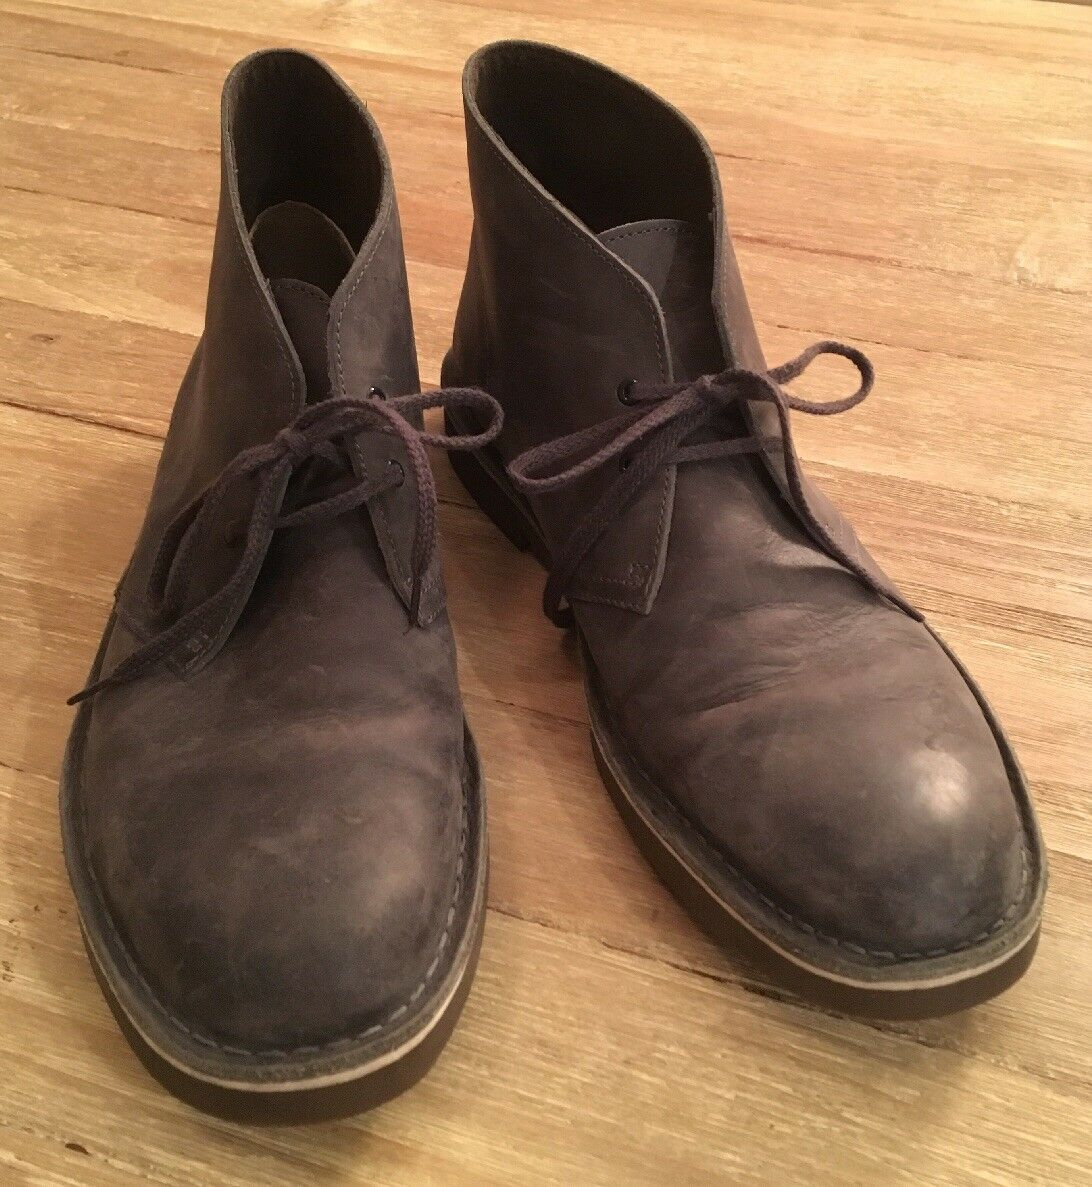 Clarks Bushacre 2 Chukka Boot Ankle Boots Low Heel Mens 11M BROWN